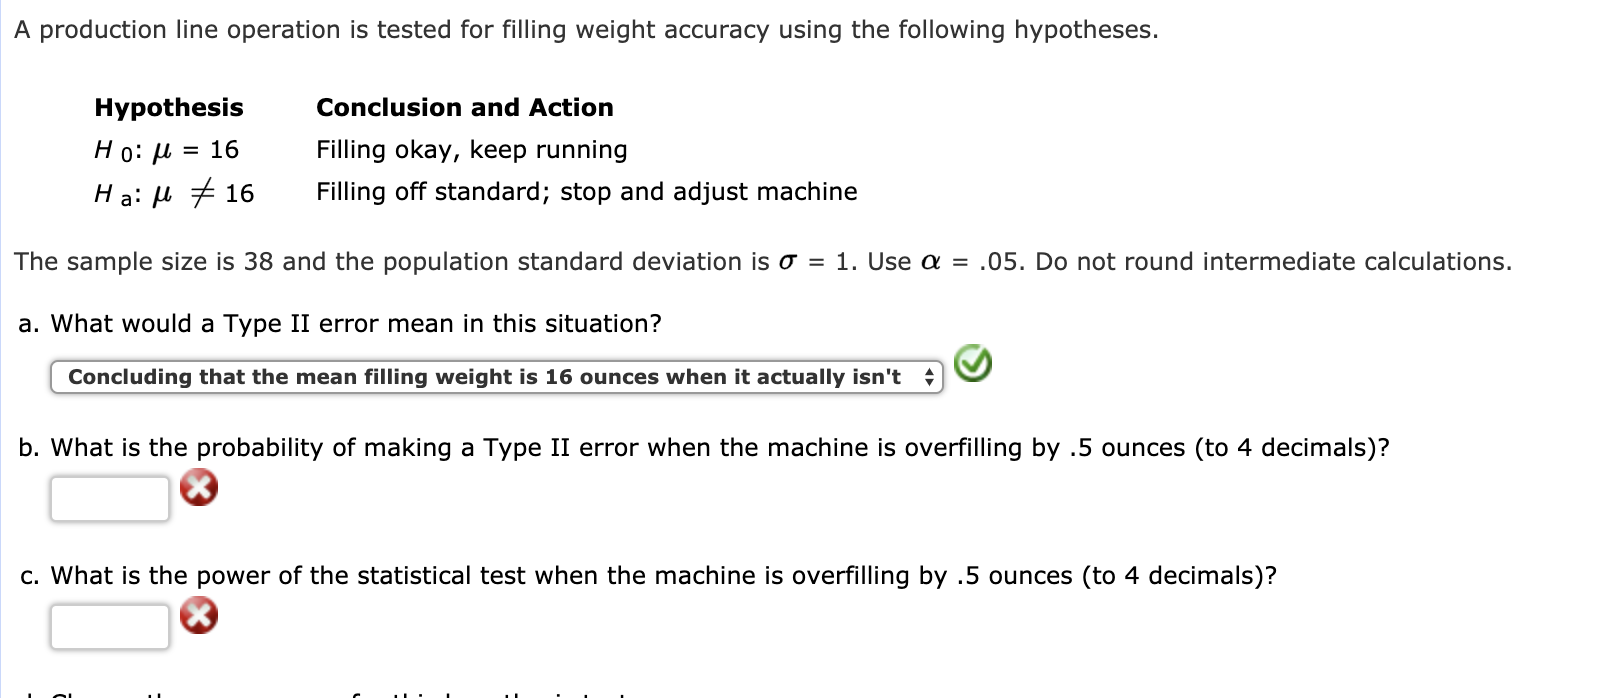 A production line operation is tested for filling weight accuracy using the following hypotheses. Hypothesis H 0: μ-16 H a: μ 16 Conclusion and Action Filling okay, keep running Filling off standard; stop and adjust machine The sample size is 38 and the population standard deviation is σ = 1 . Use α = .05. Do not round intermediate calculations. a. What would a Type II error mean in this situation? Concluding that the mean filling weight is 16 ounces when it actually isn't b. What is the probability of making a Type II error when the machine is overfilling by .5 ounces (to 4 decimals)? c. What is the power of the statistical test when the machine is overfilling by .5 ounces (to 4 decimals)?